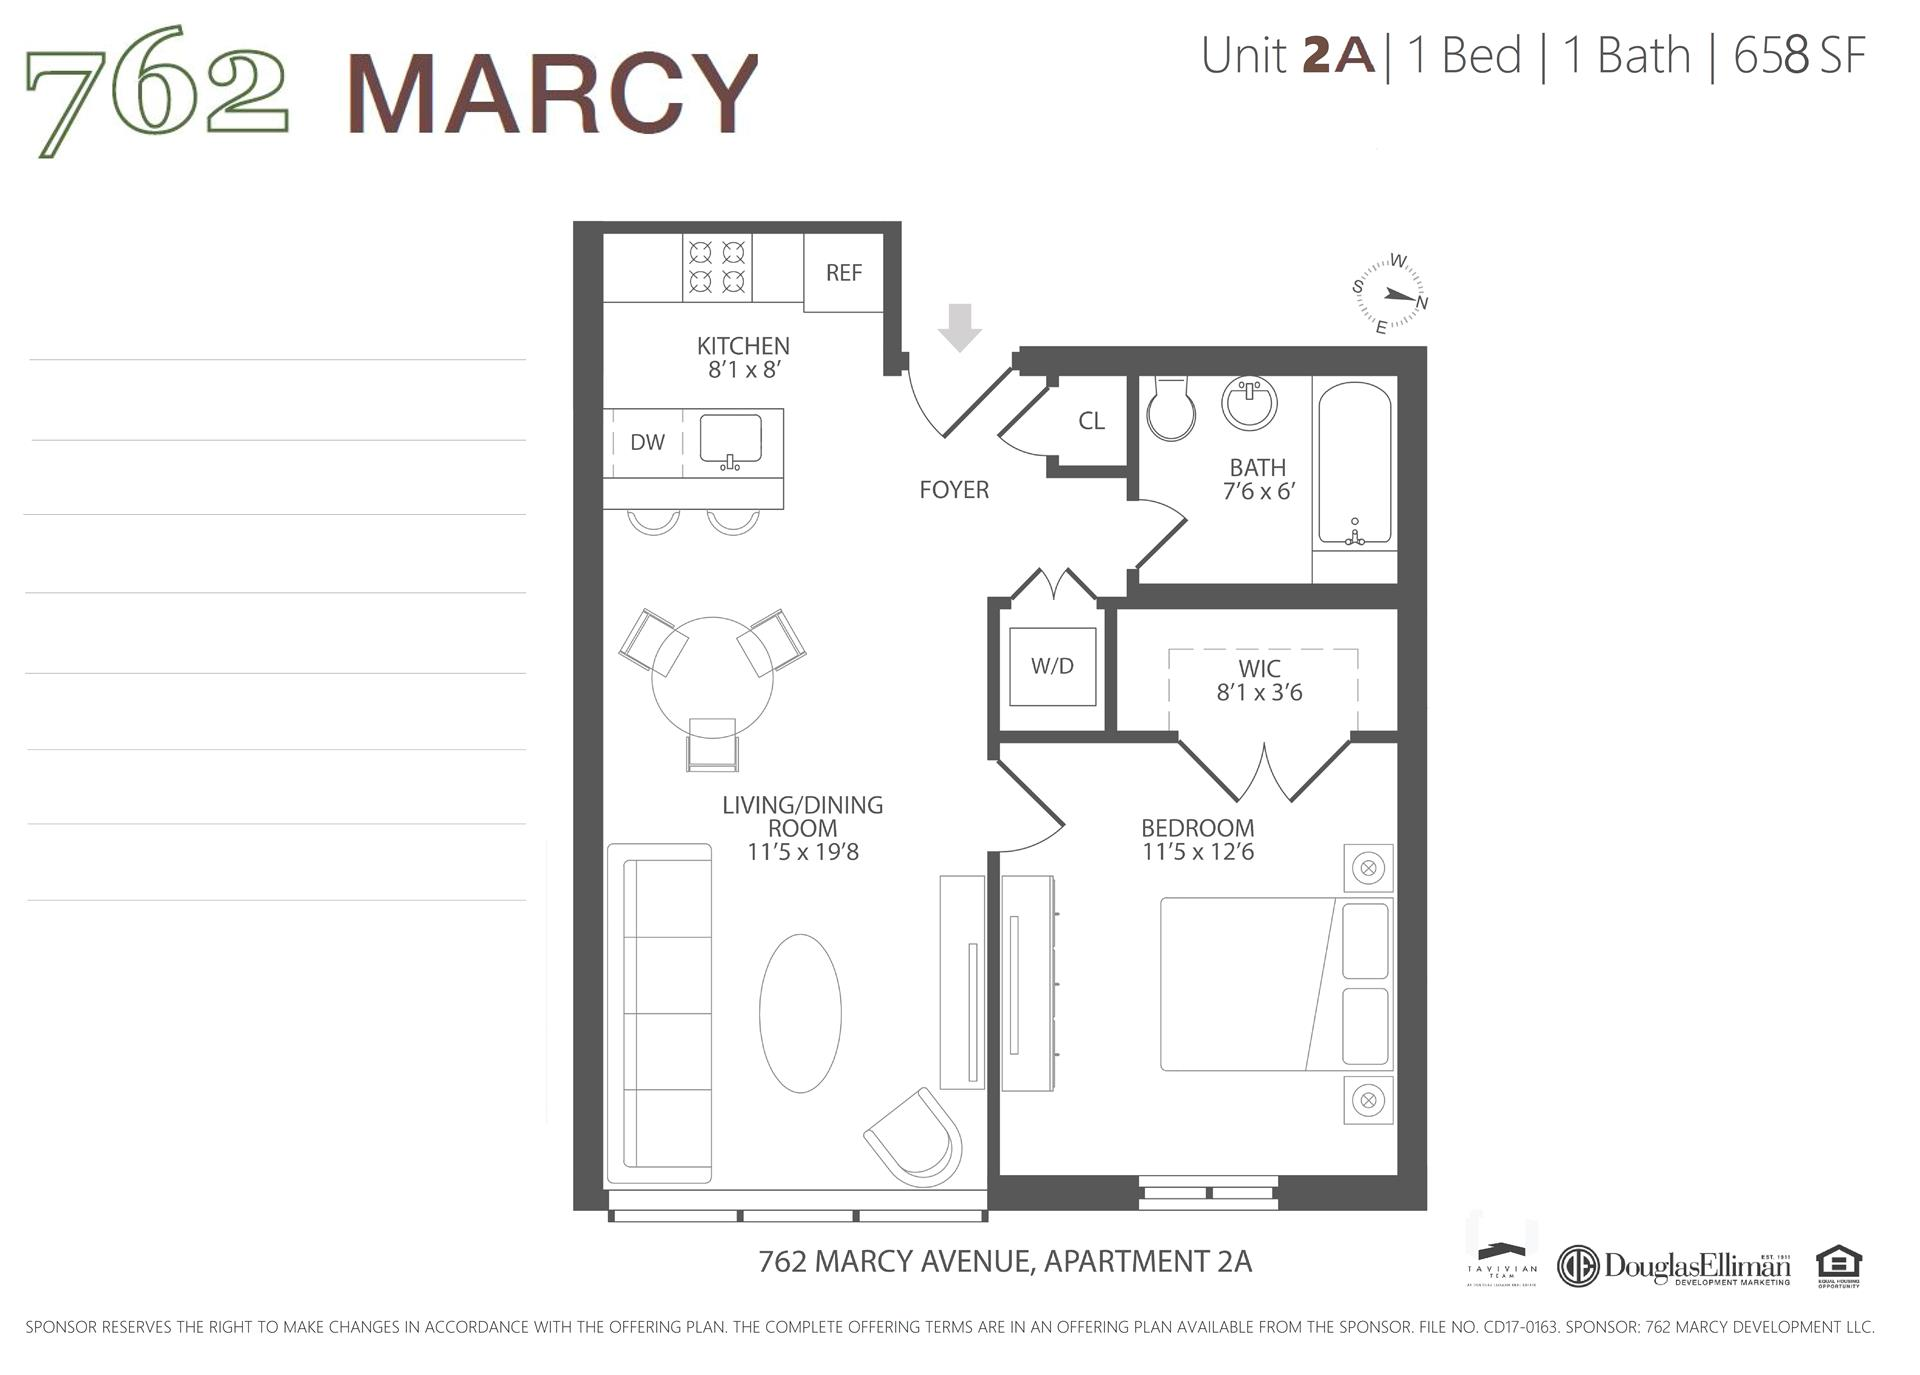 Floor plan of 762 Marcy Avenue, 2A - Bedford - Stuyvesant, New York